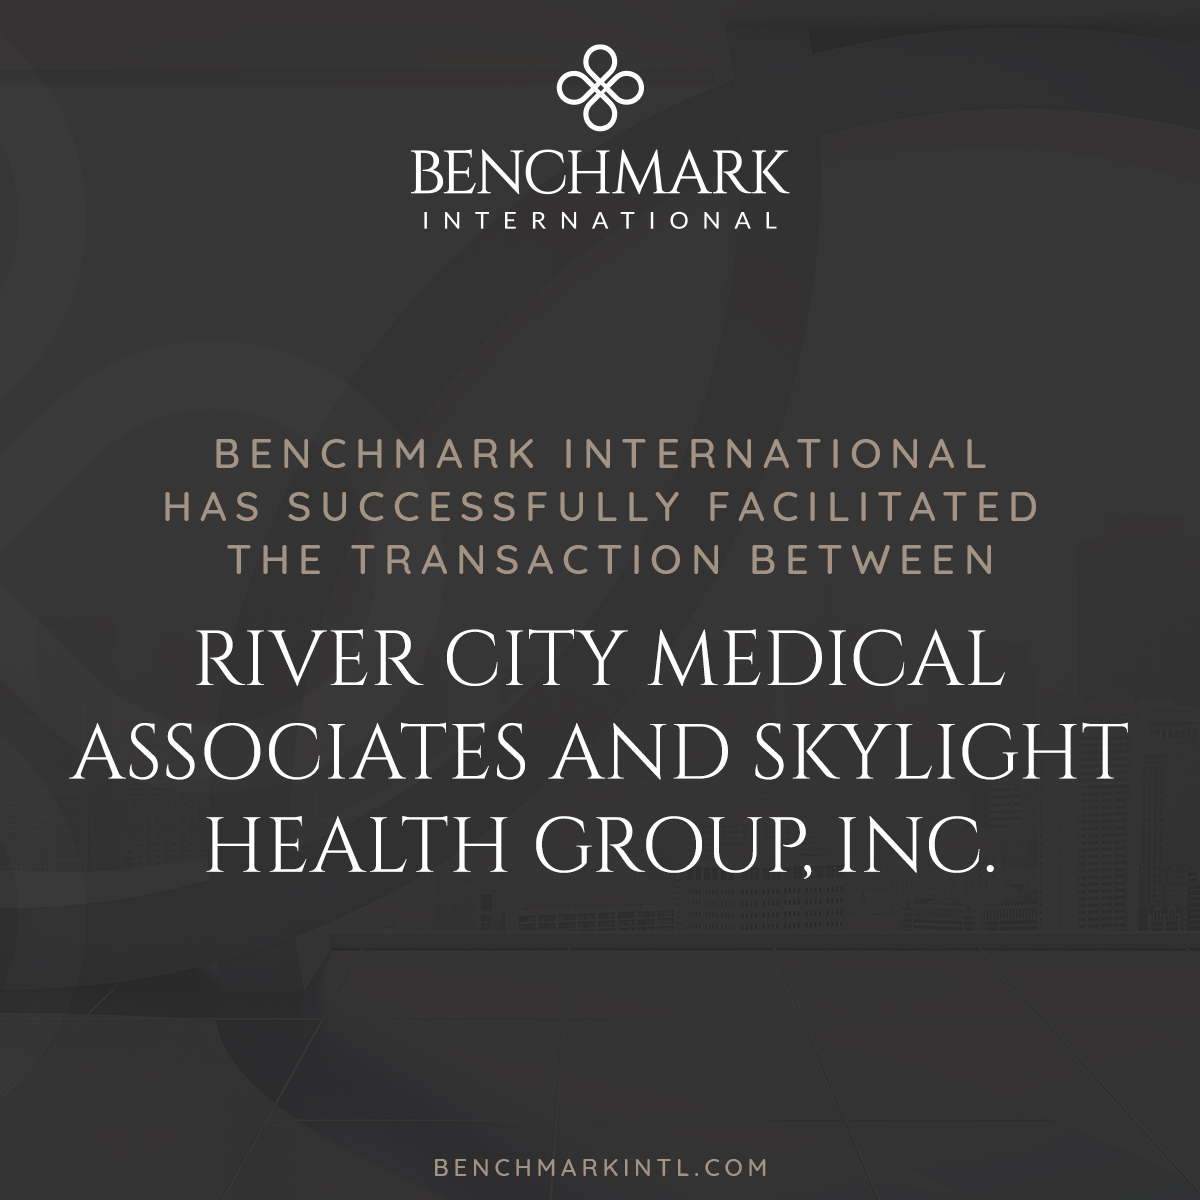 River_City_Medical_Associates_and_Skylight_Health_Group_Inc.-_Social